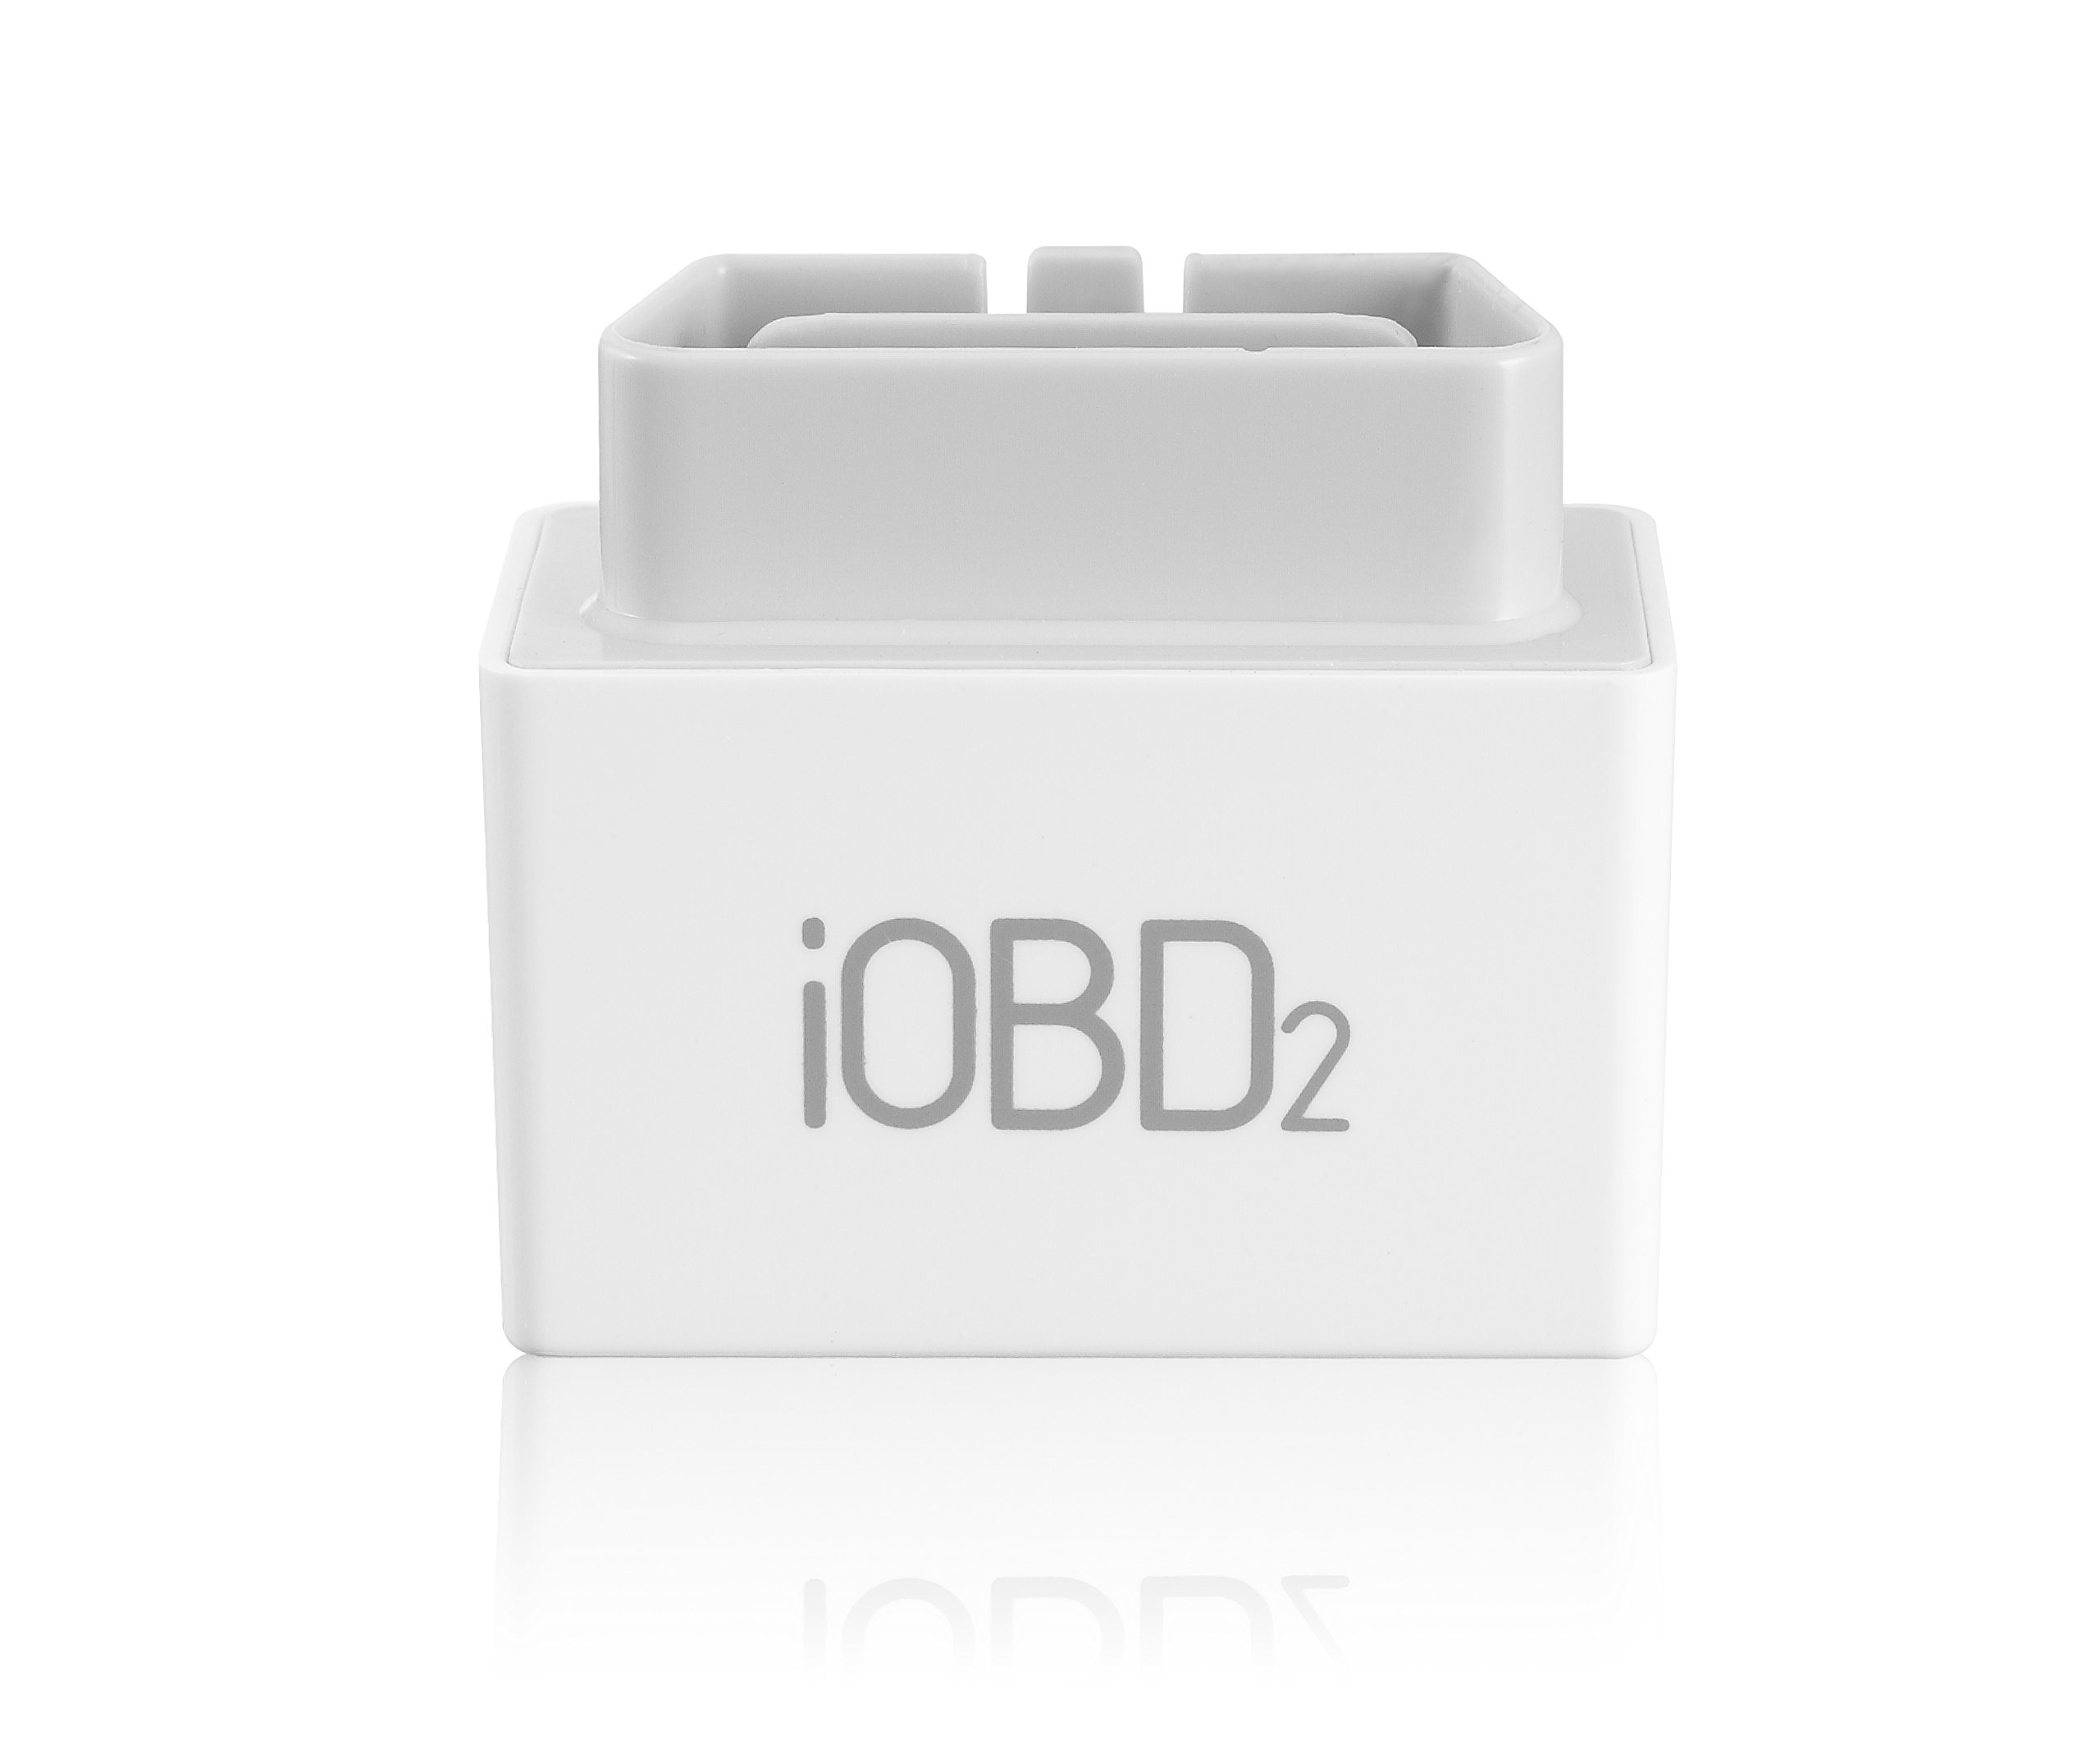 Daoming IOBD2 MFI Bluetooth EOBD OBD2 Car Diagnostics Tool For iPhone & Android Devices - White